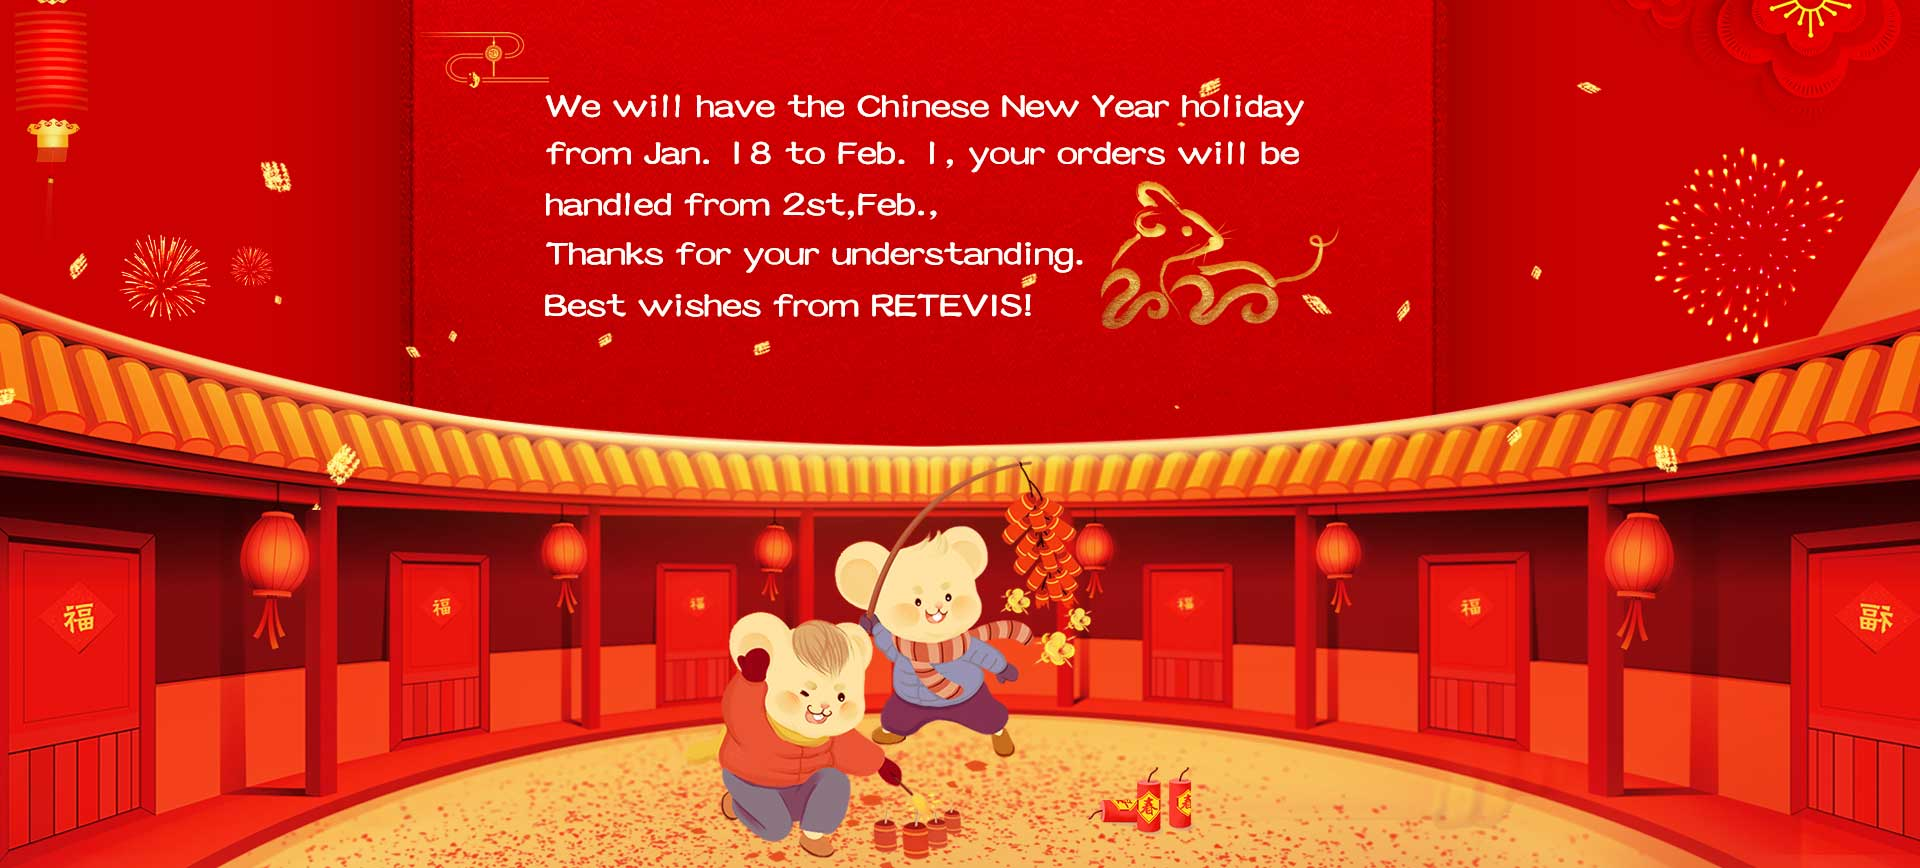 We will have our Chinese New Year from 30 Jan. to 13 Feb.